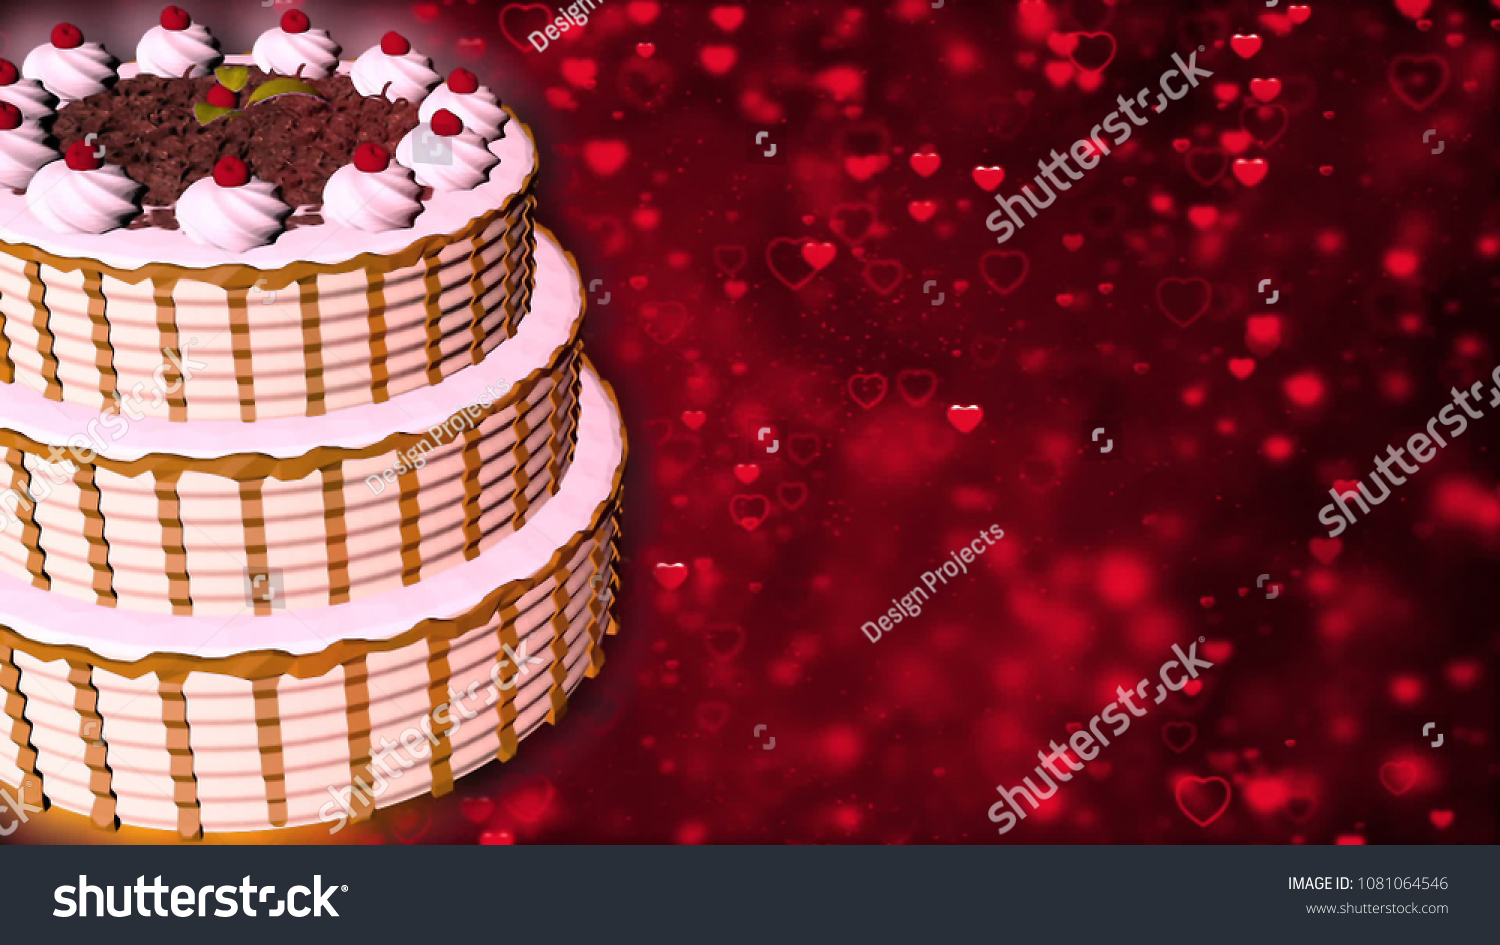 Happy Birthday Cake 3 D Rendering Stock Illustration 1081064546